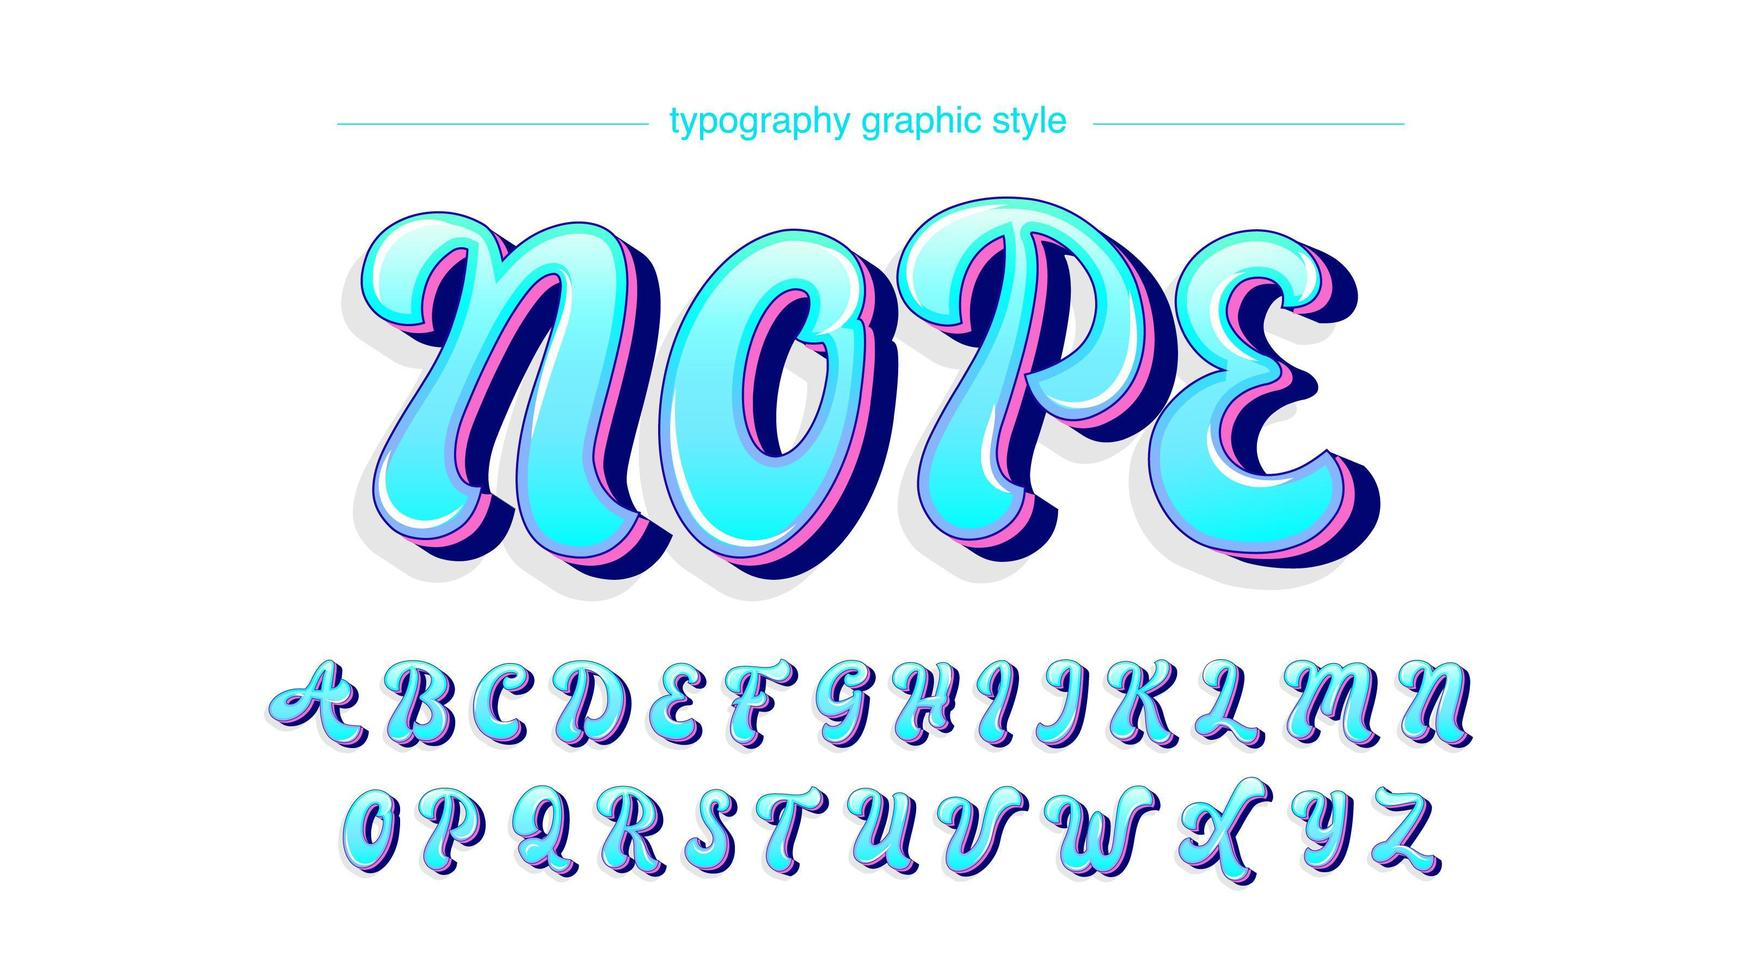 Neon Blue Purple Uppercase Calligraphy Style Font vector